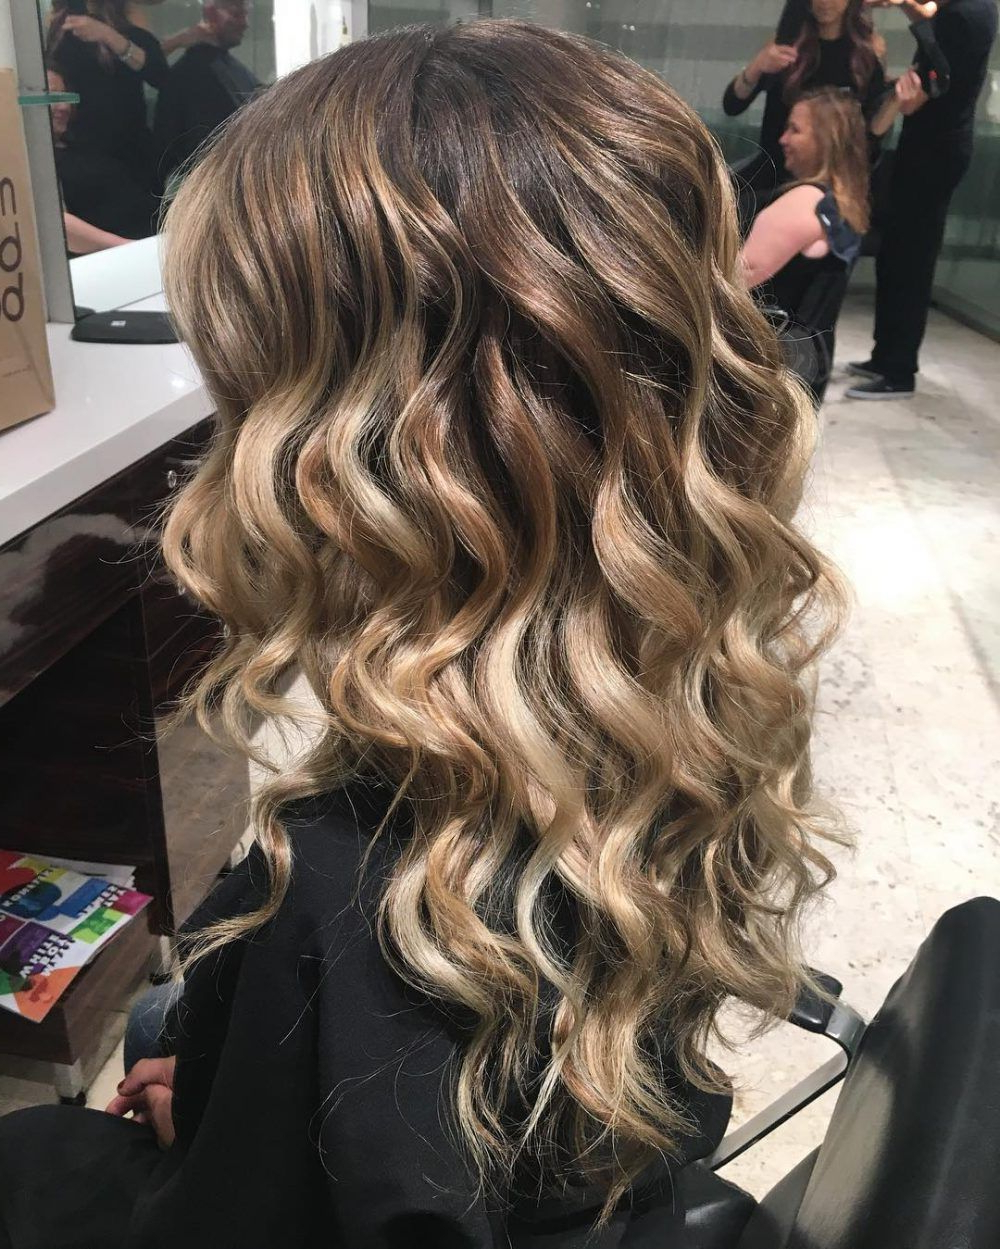 Recent Curly Prom Prom Hairstyles With 18 Stunning Curly Prom Hairstyles For 2019 – Updos, Down Do's (Gallery 7 of 20)